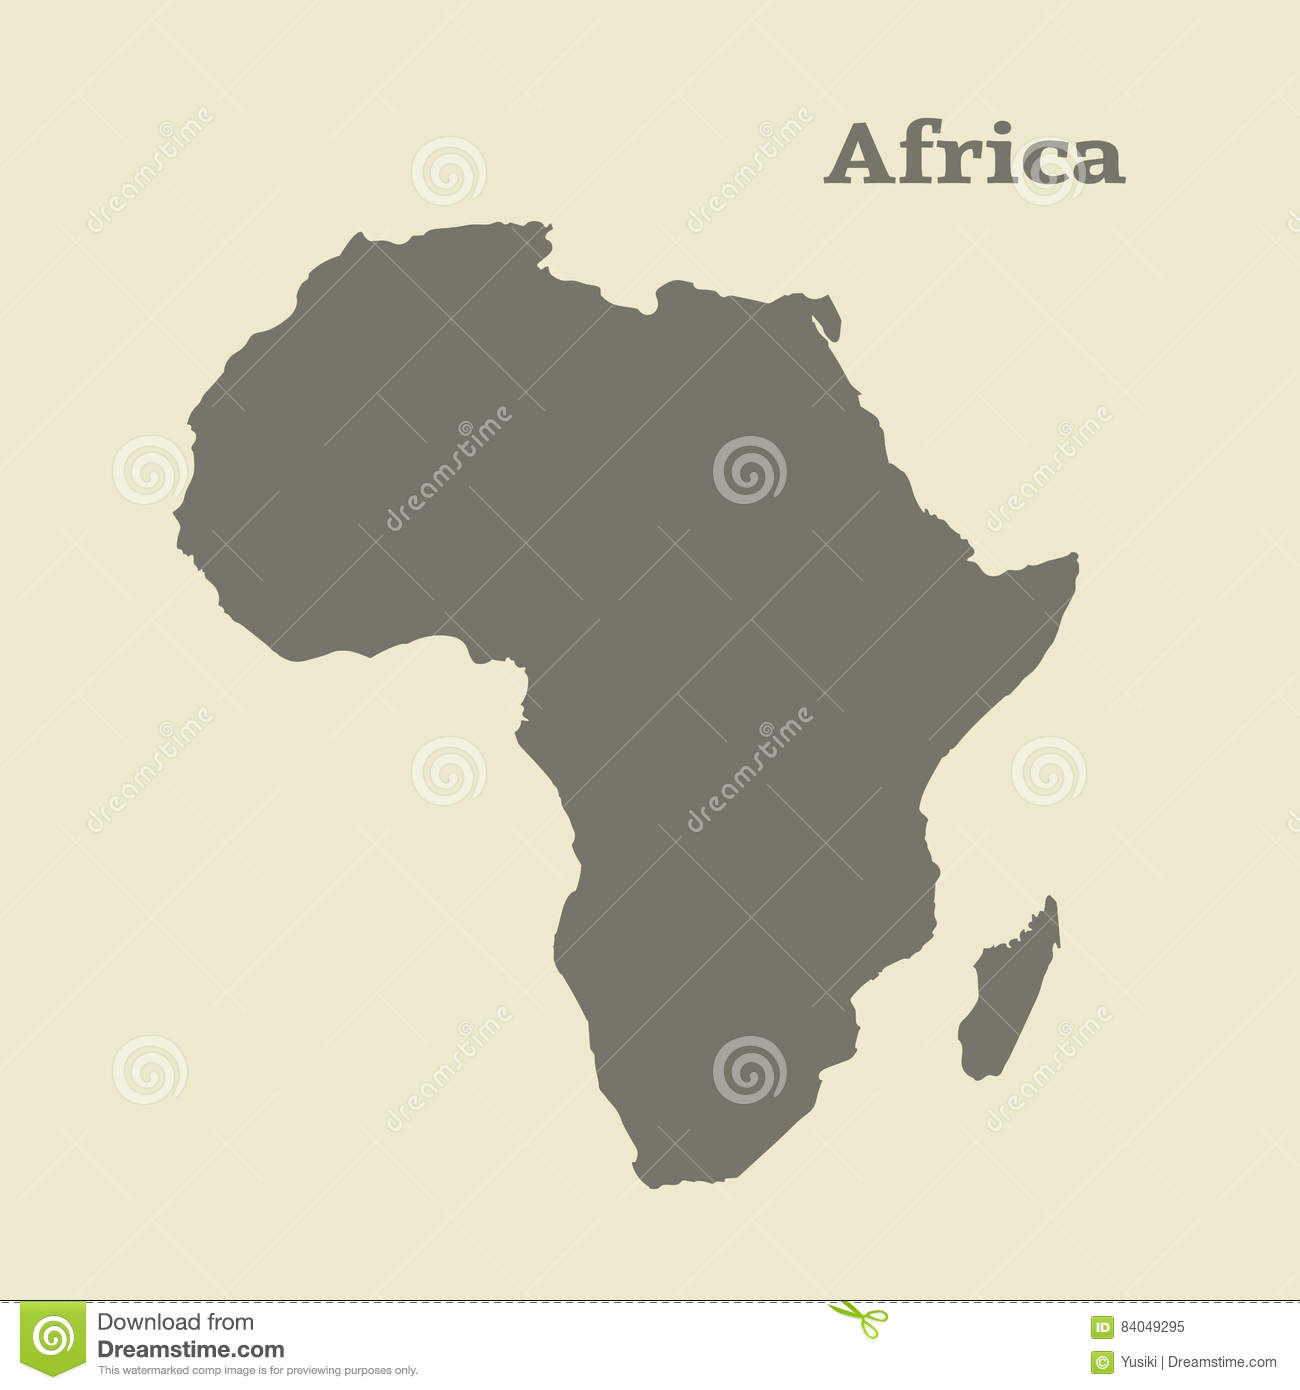 Outline Map Of Africa. Isolated Illustration. Stock Illustration ...